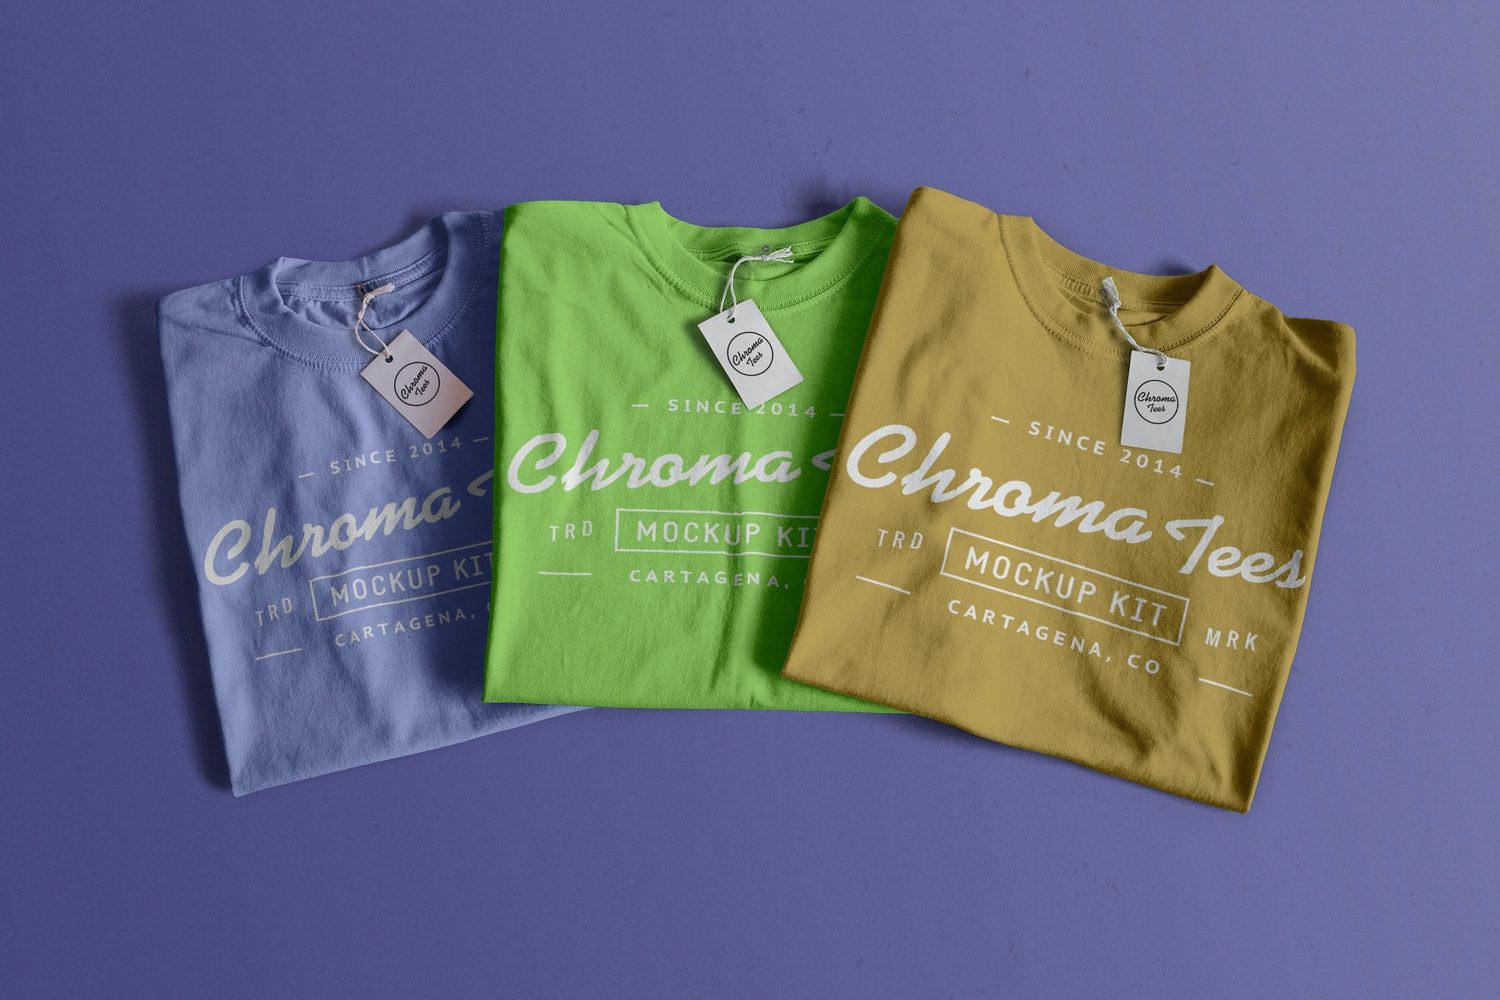 Folded T-Shirts Mockup 02 by Antonio Padilla on Original Mockups